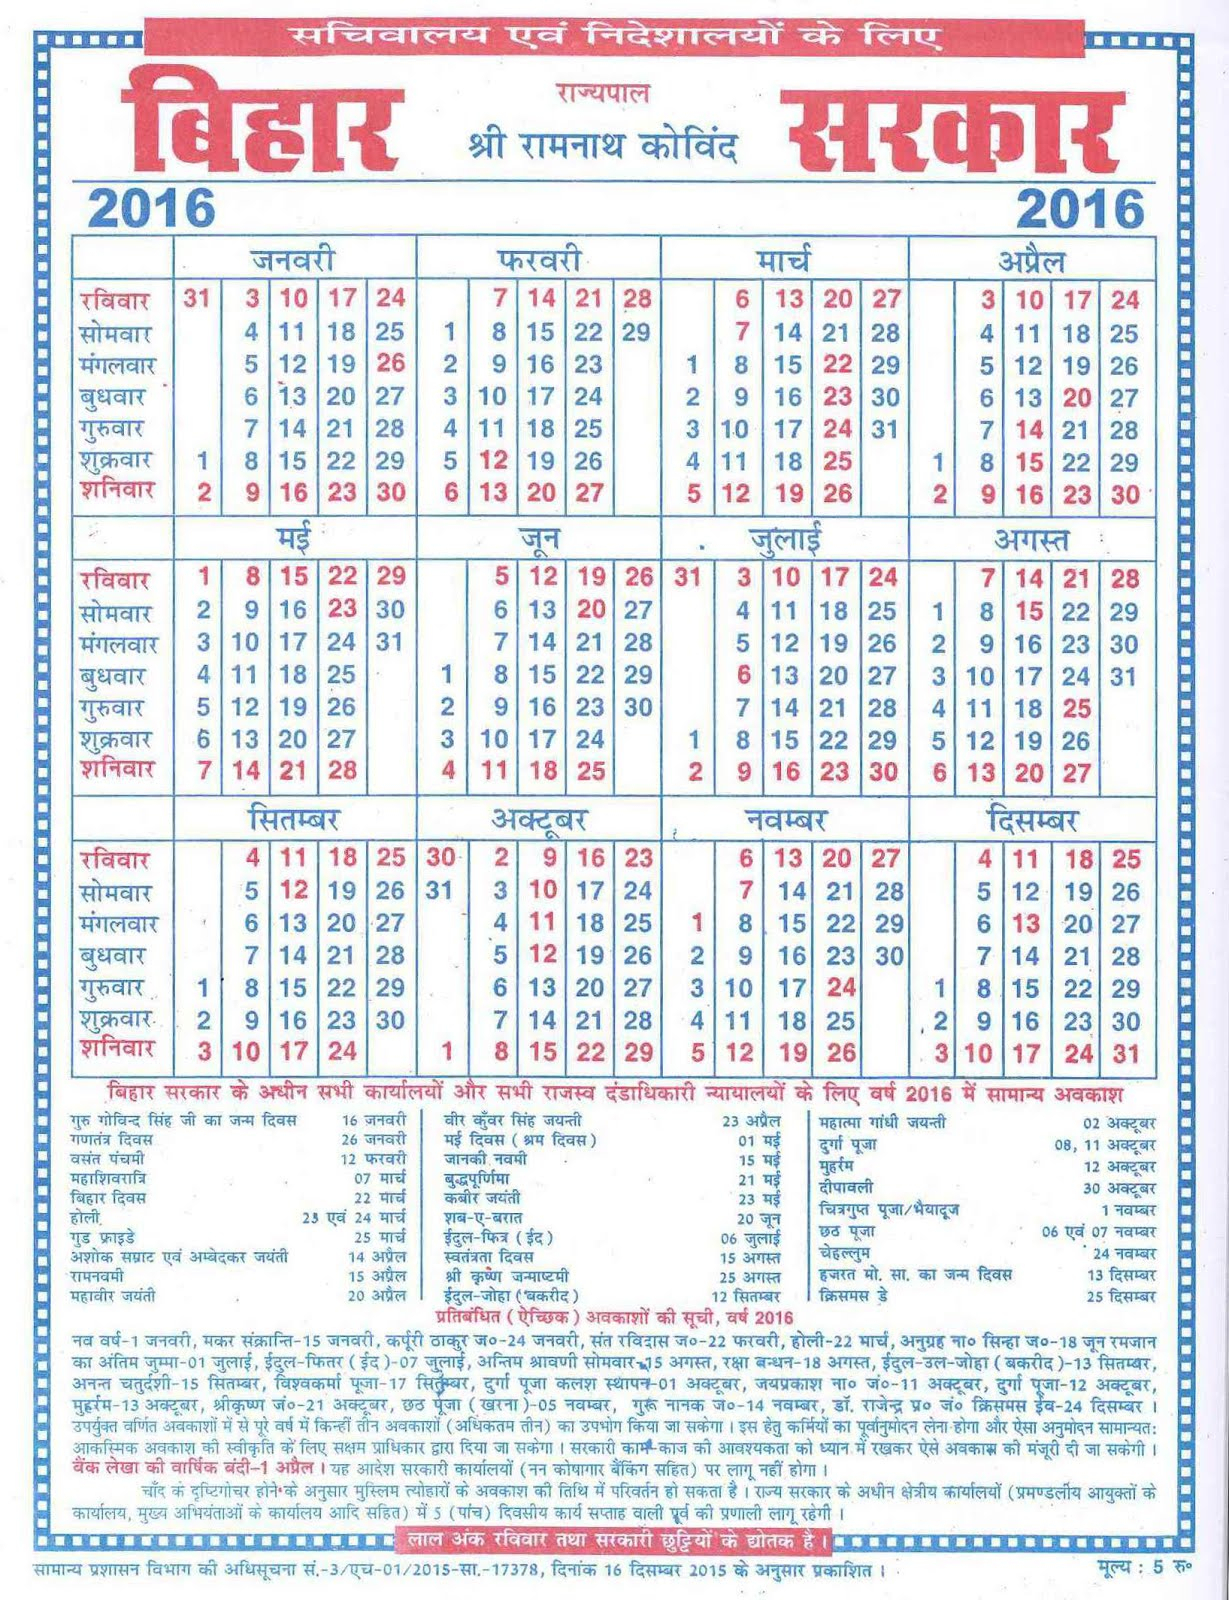 Bihar Government Calendar 2016 with Bihar Government Holiday Calendar